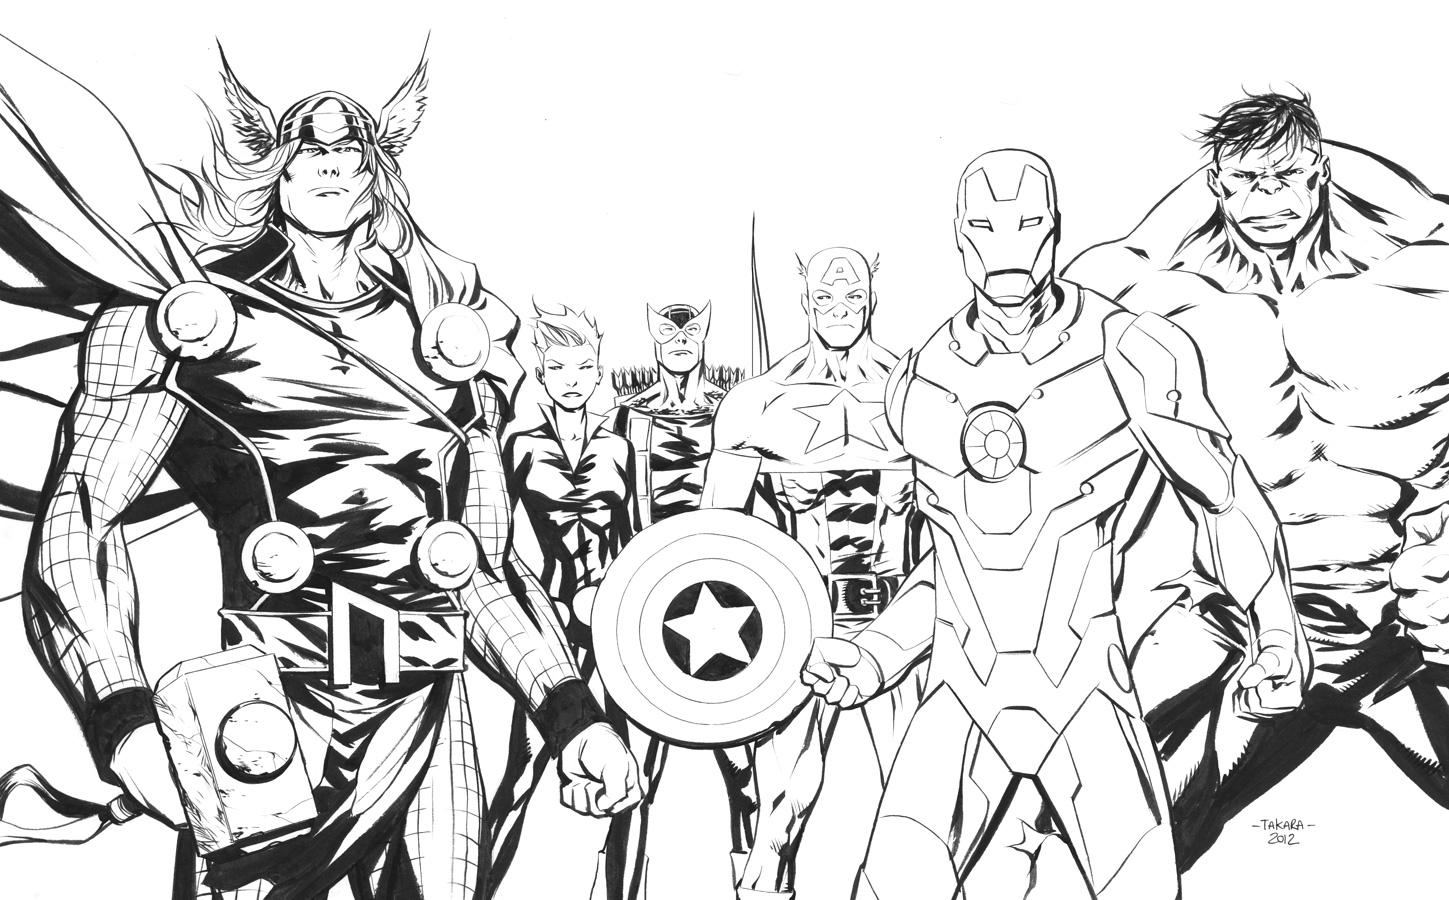 Avengers to color for kids - Avengers - Coloring pages for kids ...